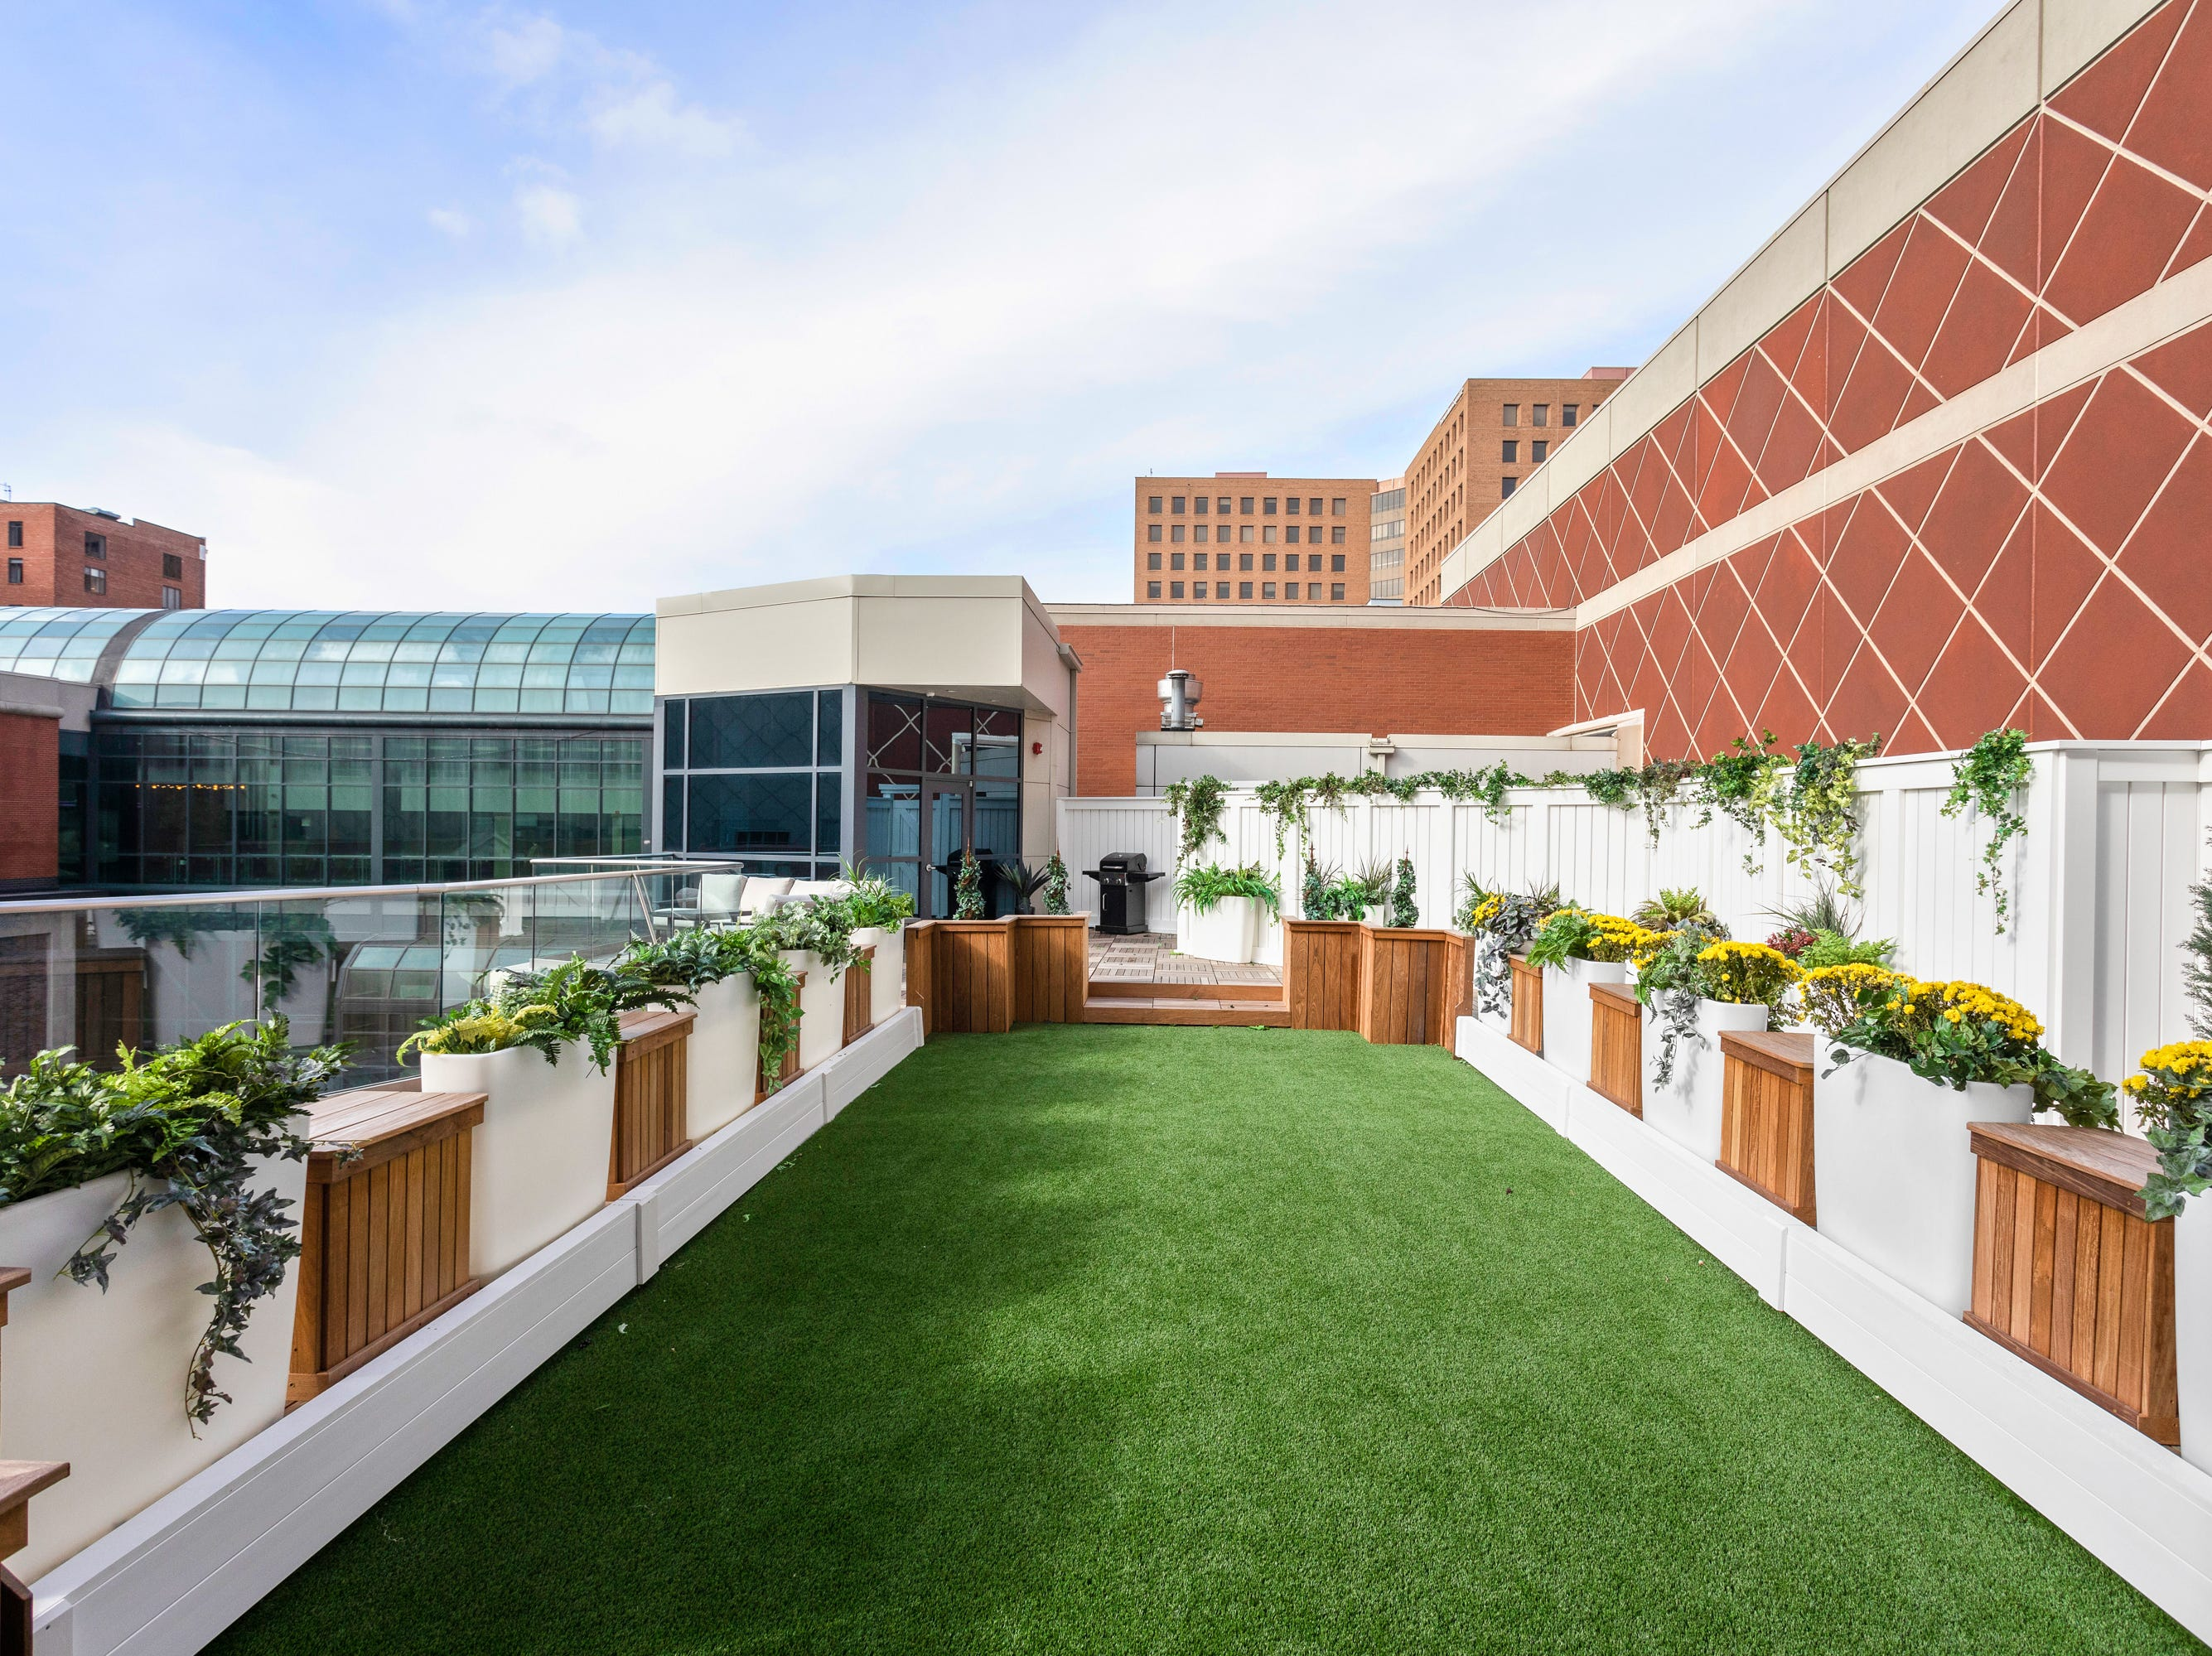 The rooftop terrace has a putting green.